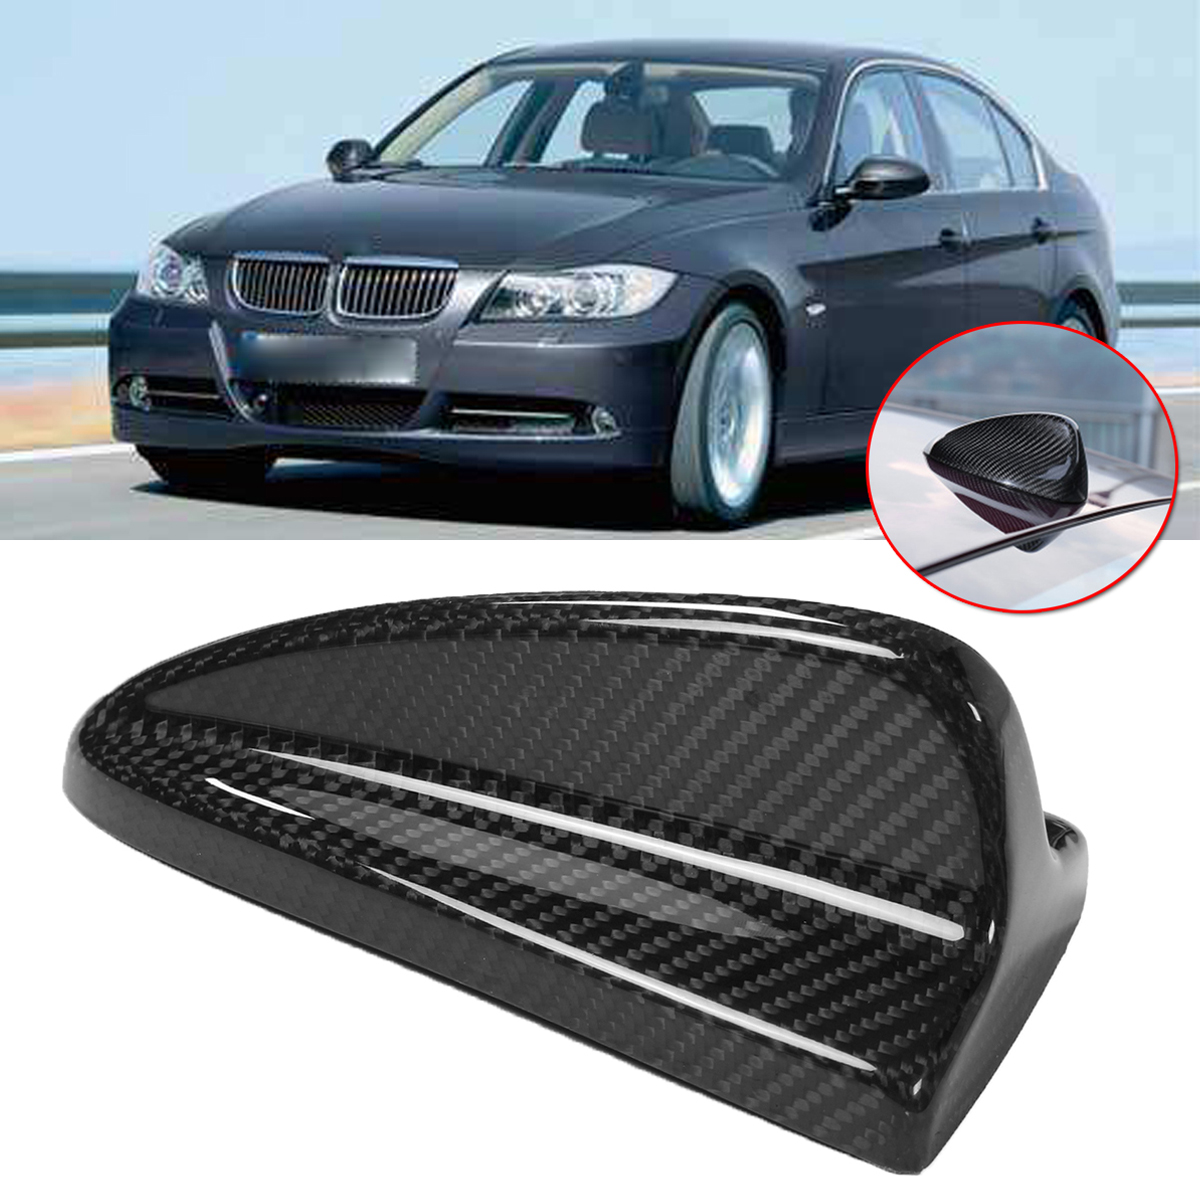 Carbon Fiber Antenna Cover Shark Fin Trim for 04-13 BMW E90 /& E90 M3 E46 E82 1M